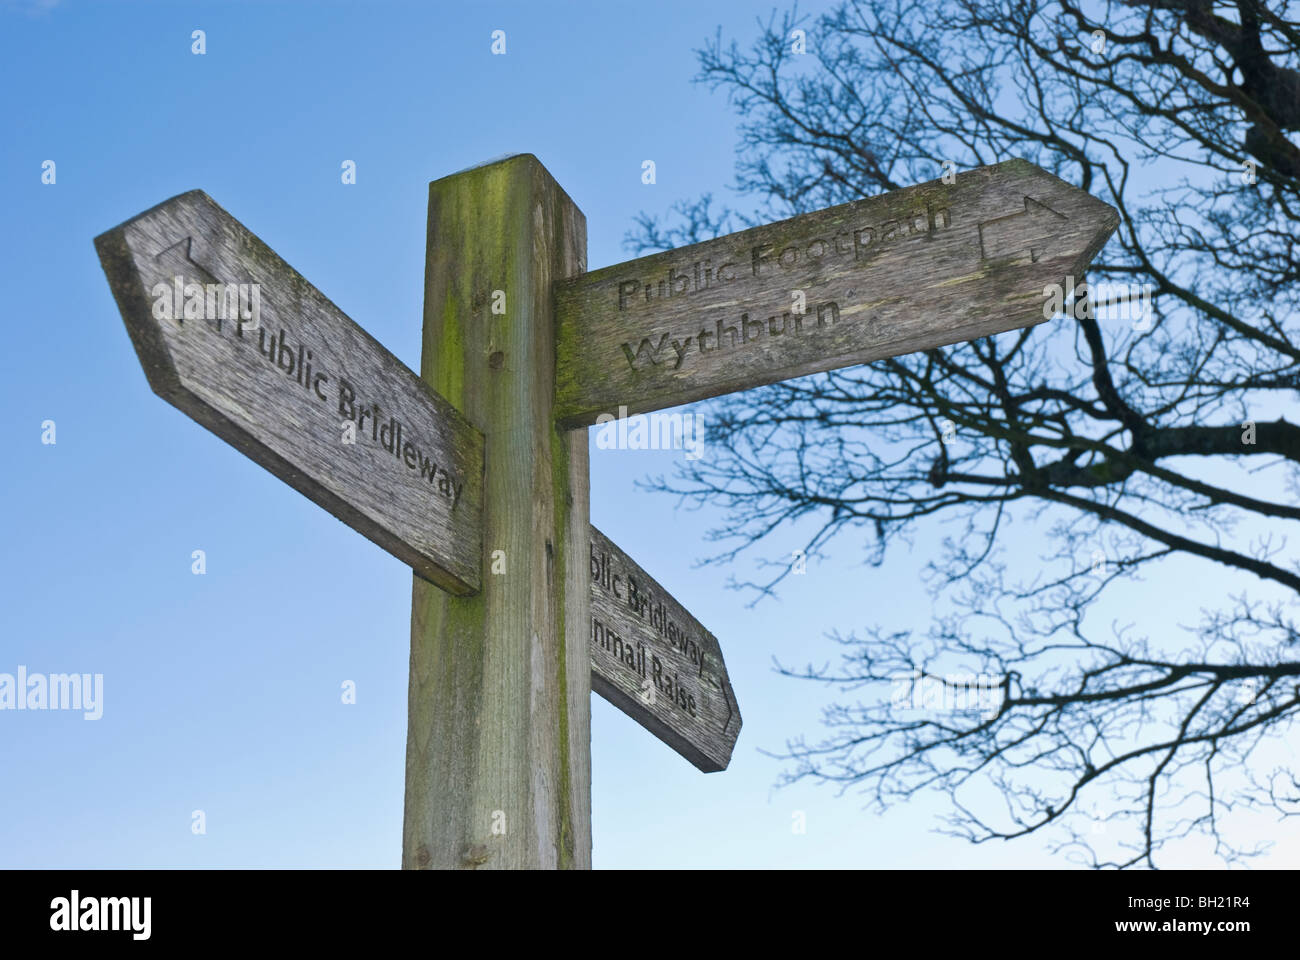 Wooden public footpath and bridleway sign in the Lake District, Cumbria - Stock Image